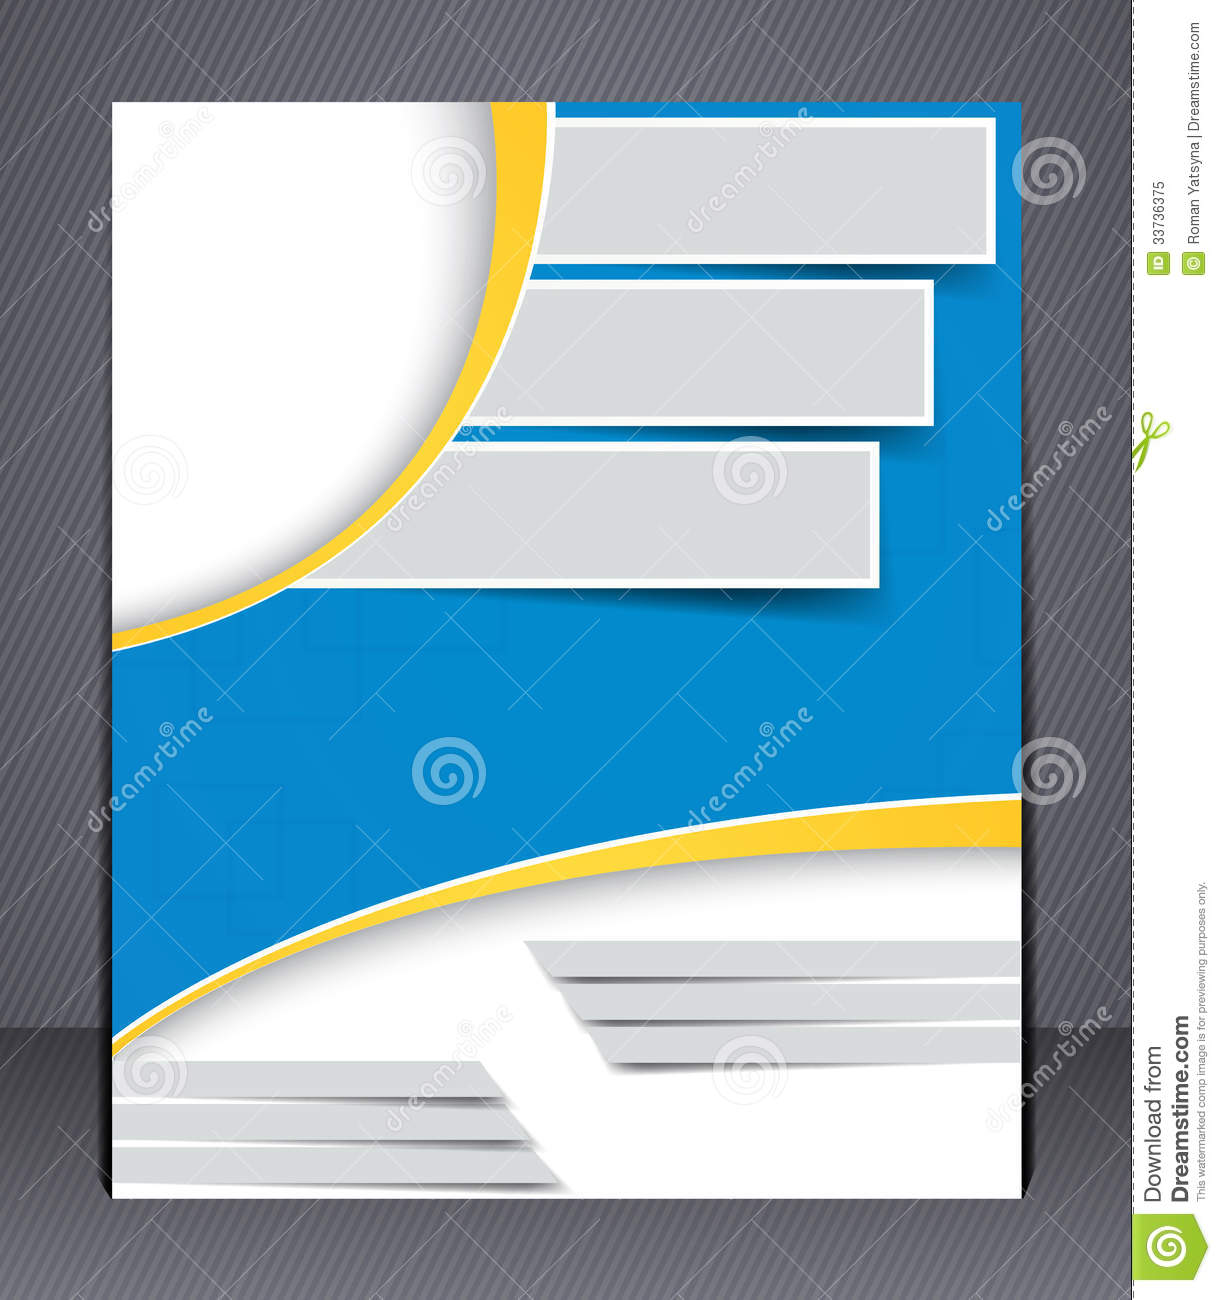 Brochure design in blue and yellow colors stock vector for Free templates for catalogue design